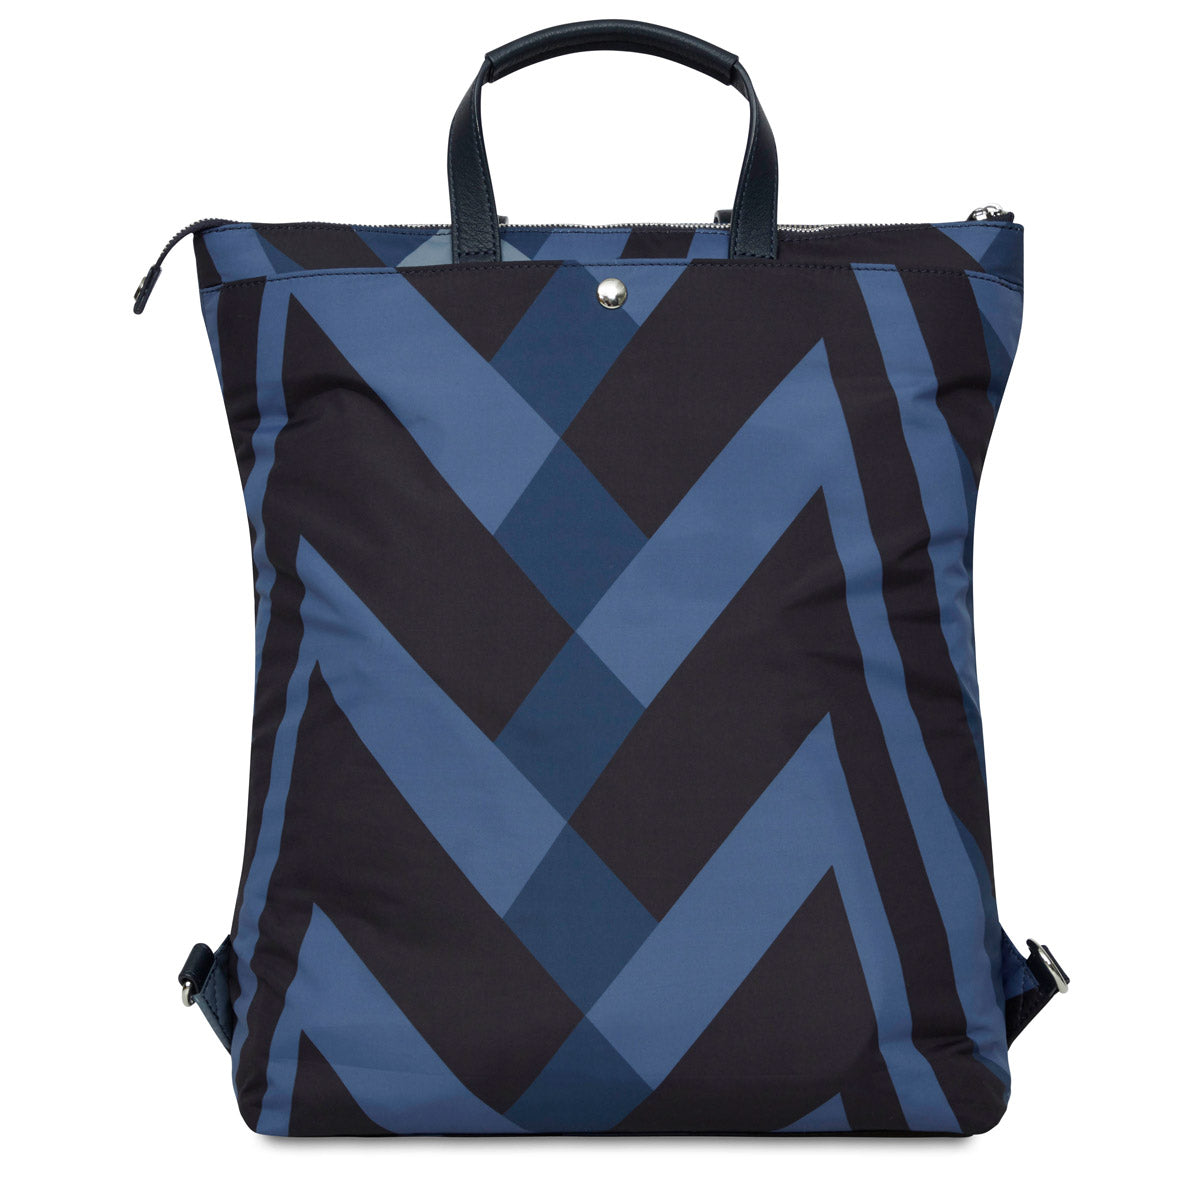 "Harewood Laptop Tote Backpack - 15"" (V&A Exclusive) -  Dark Navy 